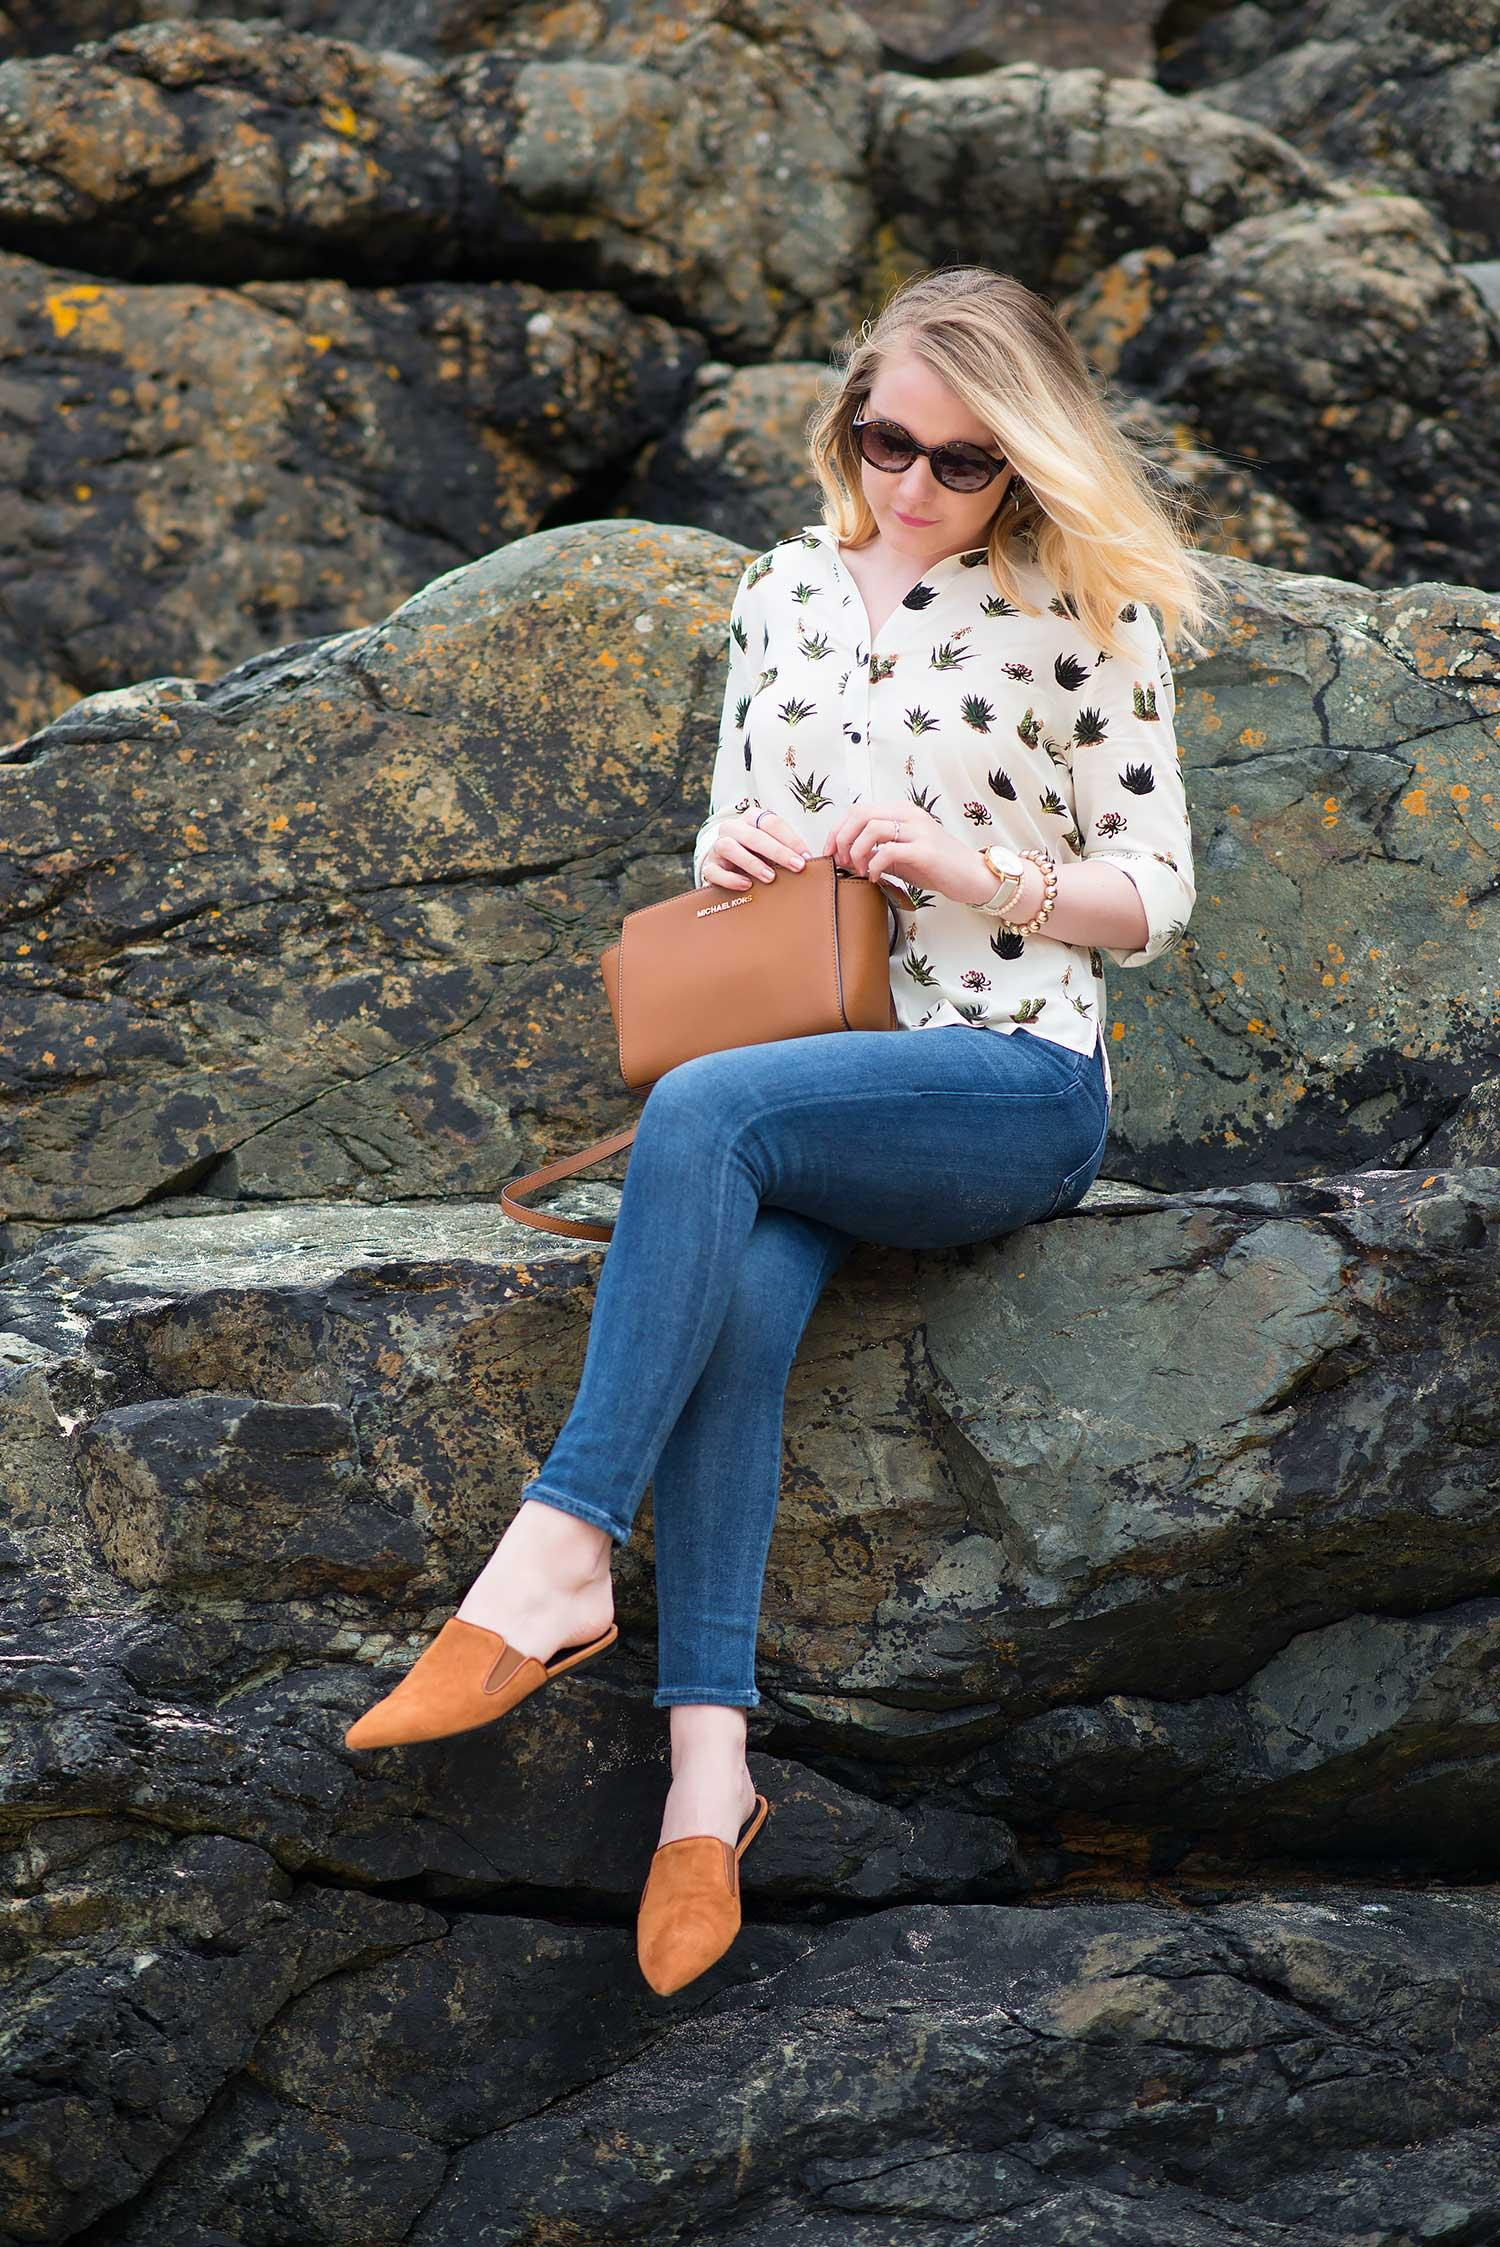 lorna-burford-beach-rocks-jeans-cactus-shirt